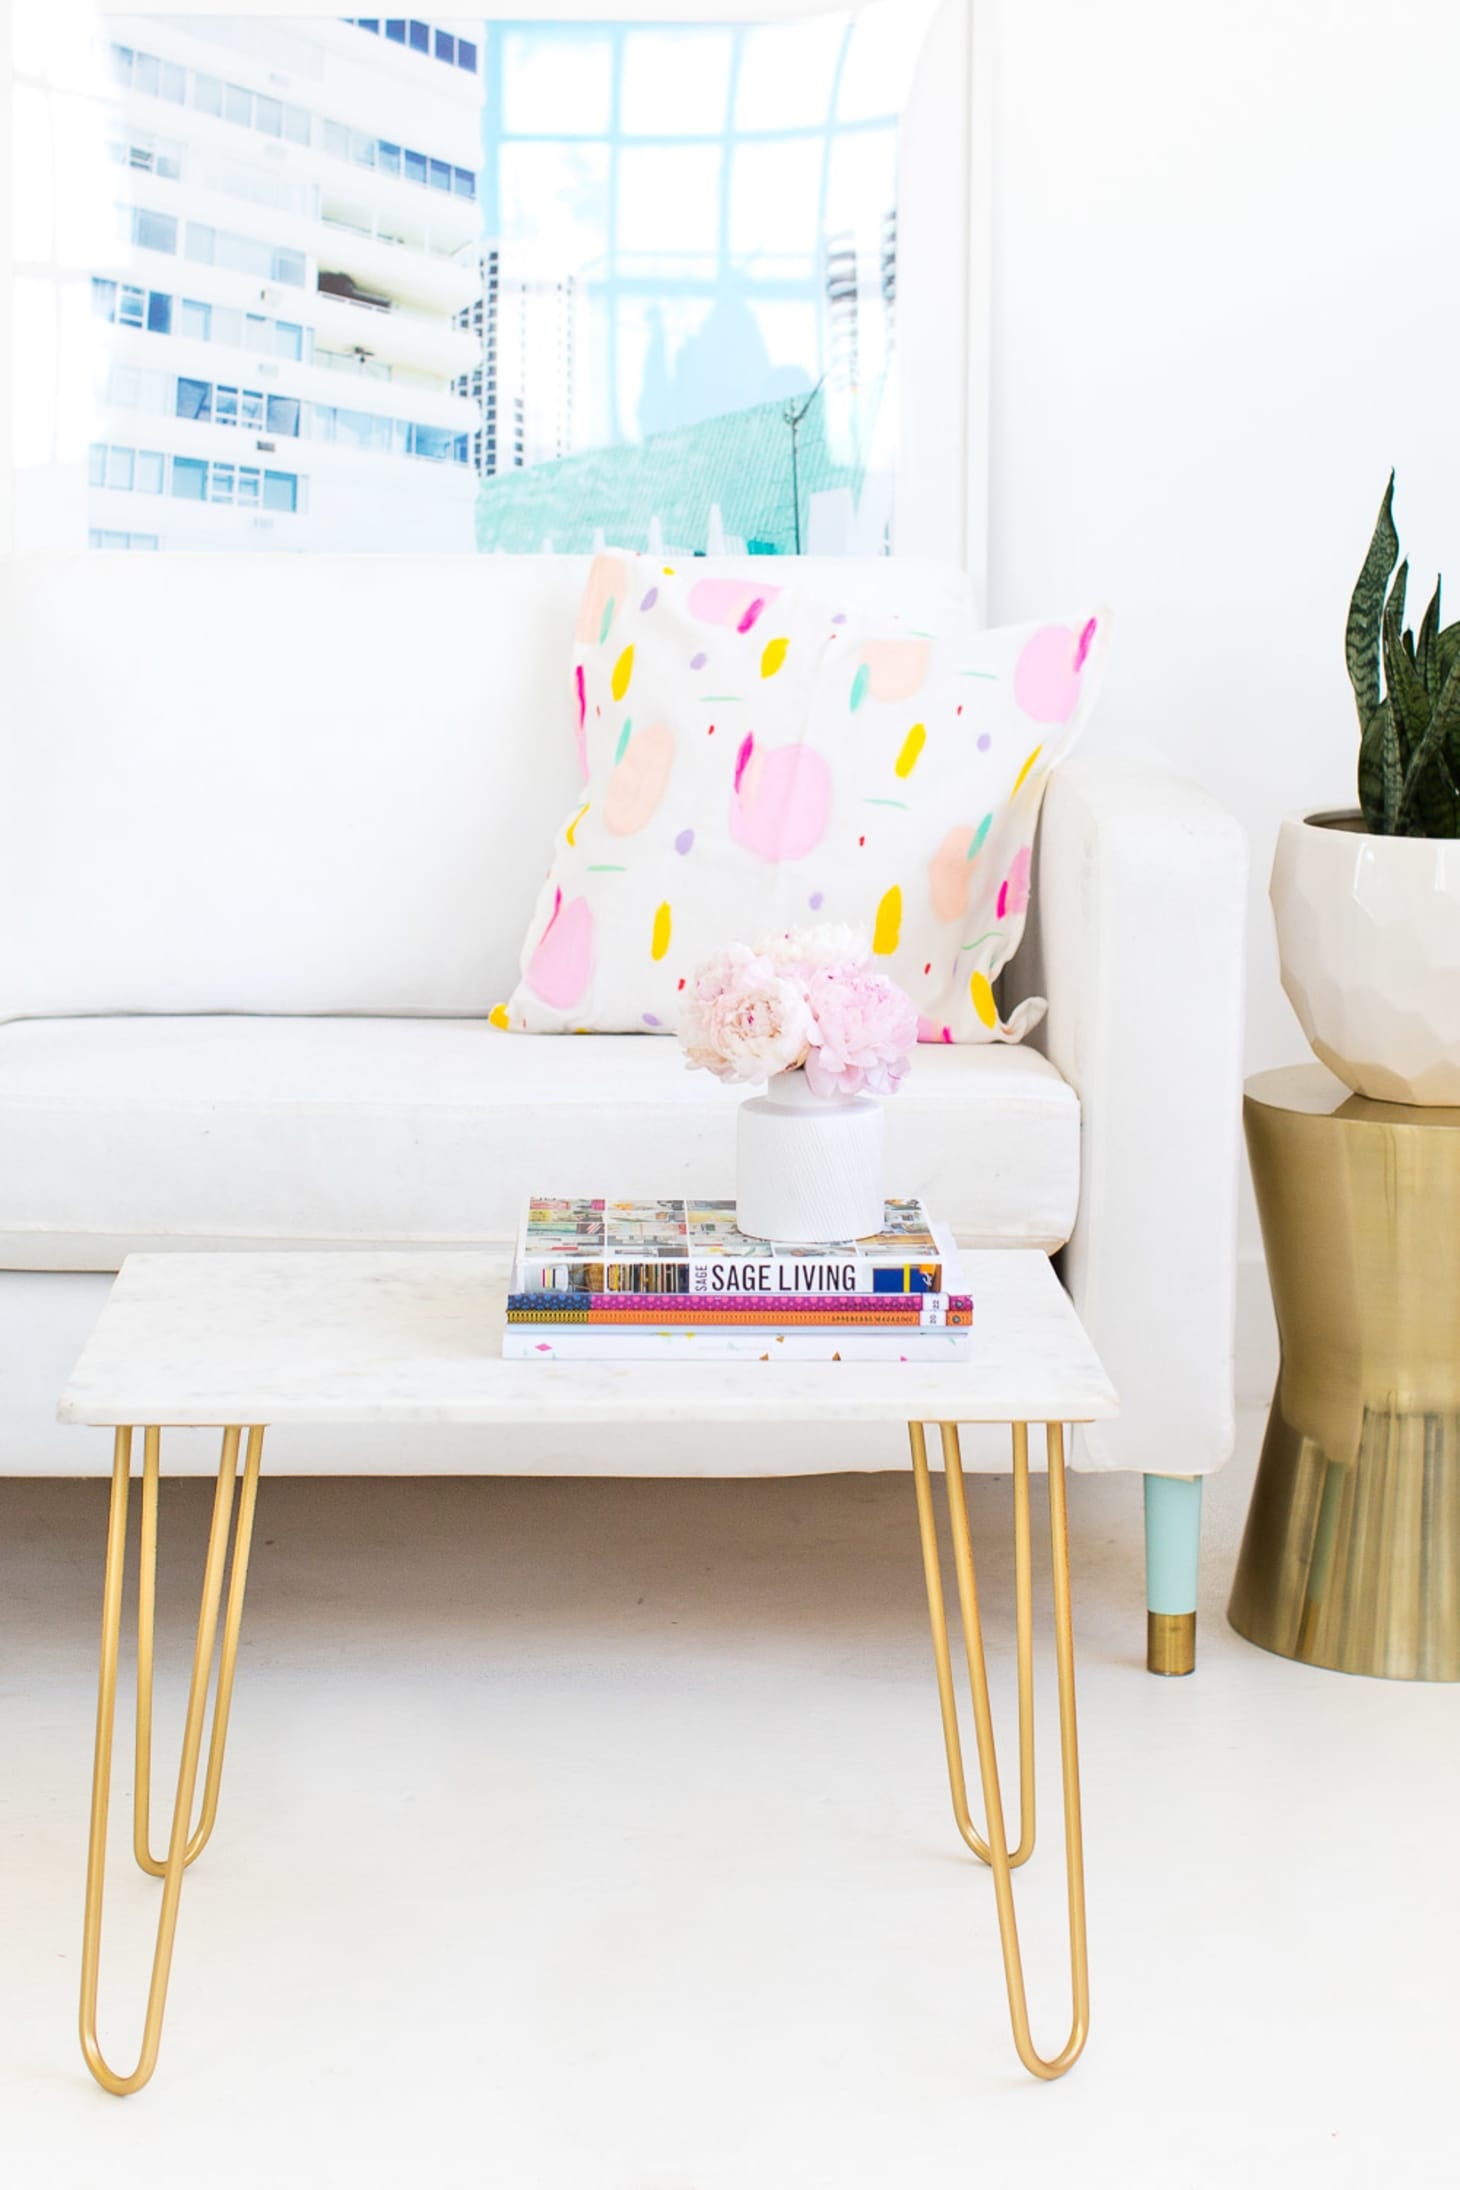 25 onthecheap diy ideas to make your living room look